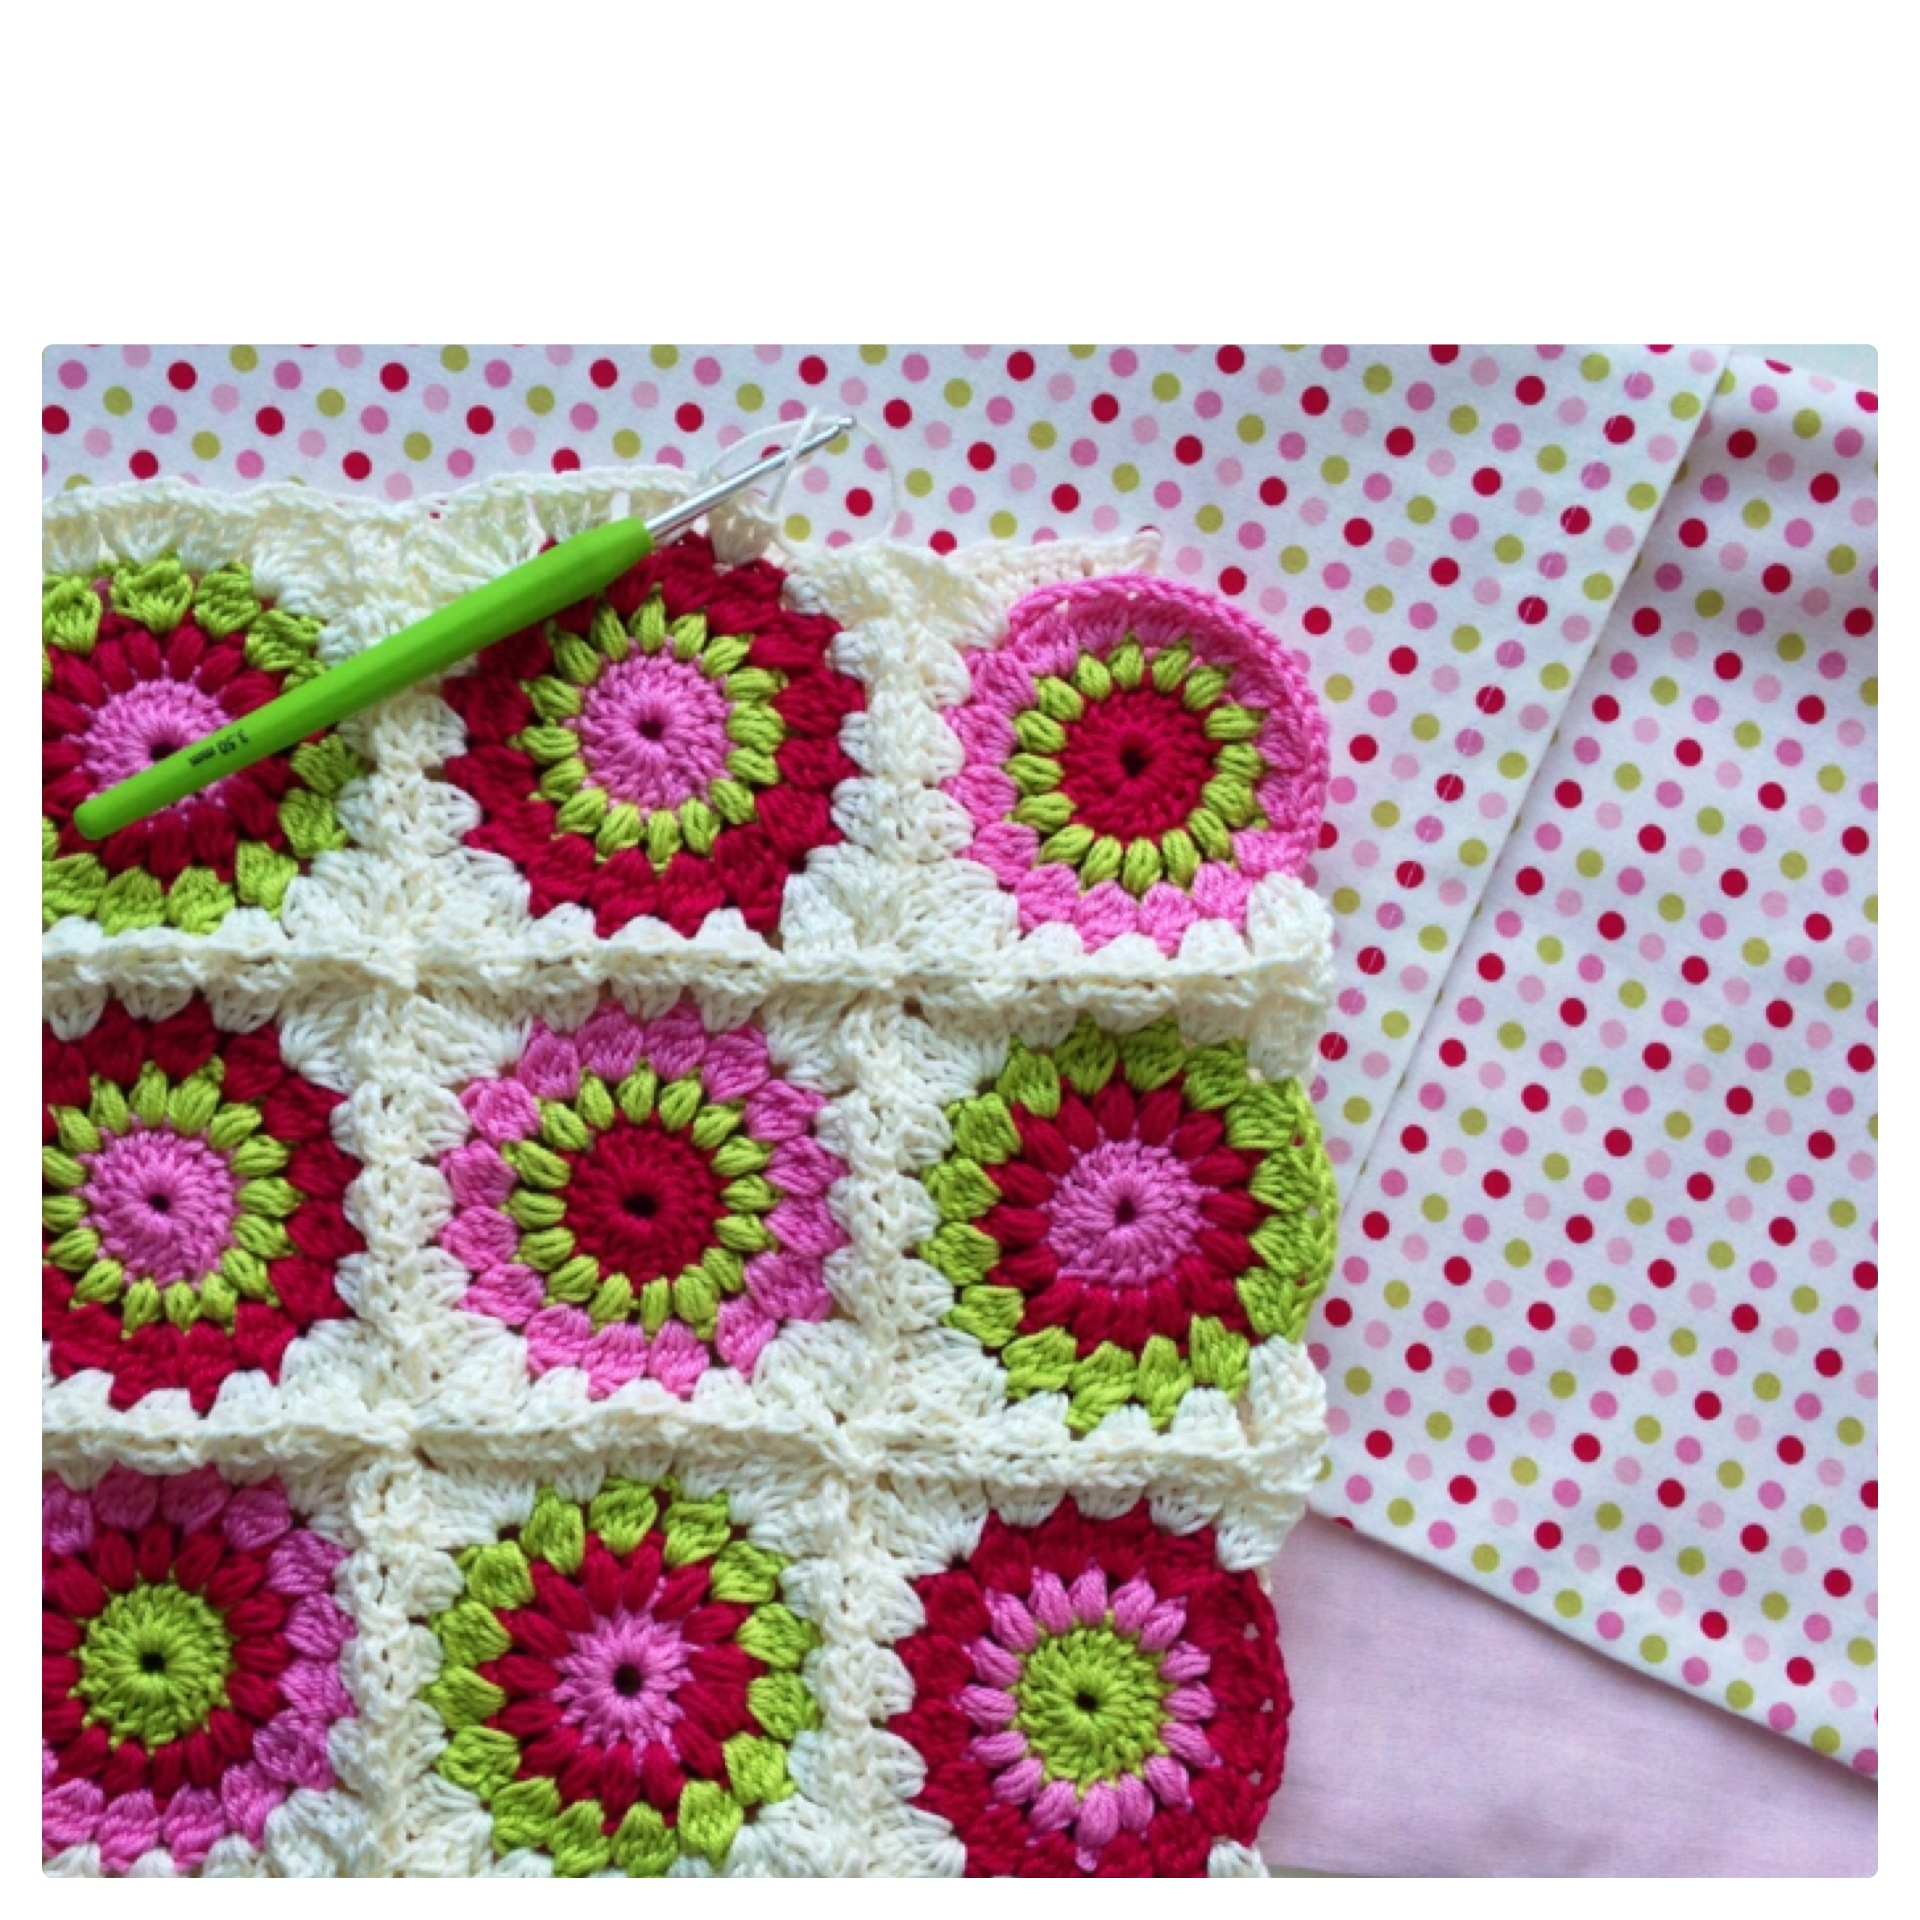 Crochet Pattern Granny Square Pillows : Sunburst Granny Square Cushion maRRose CCC